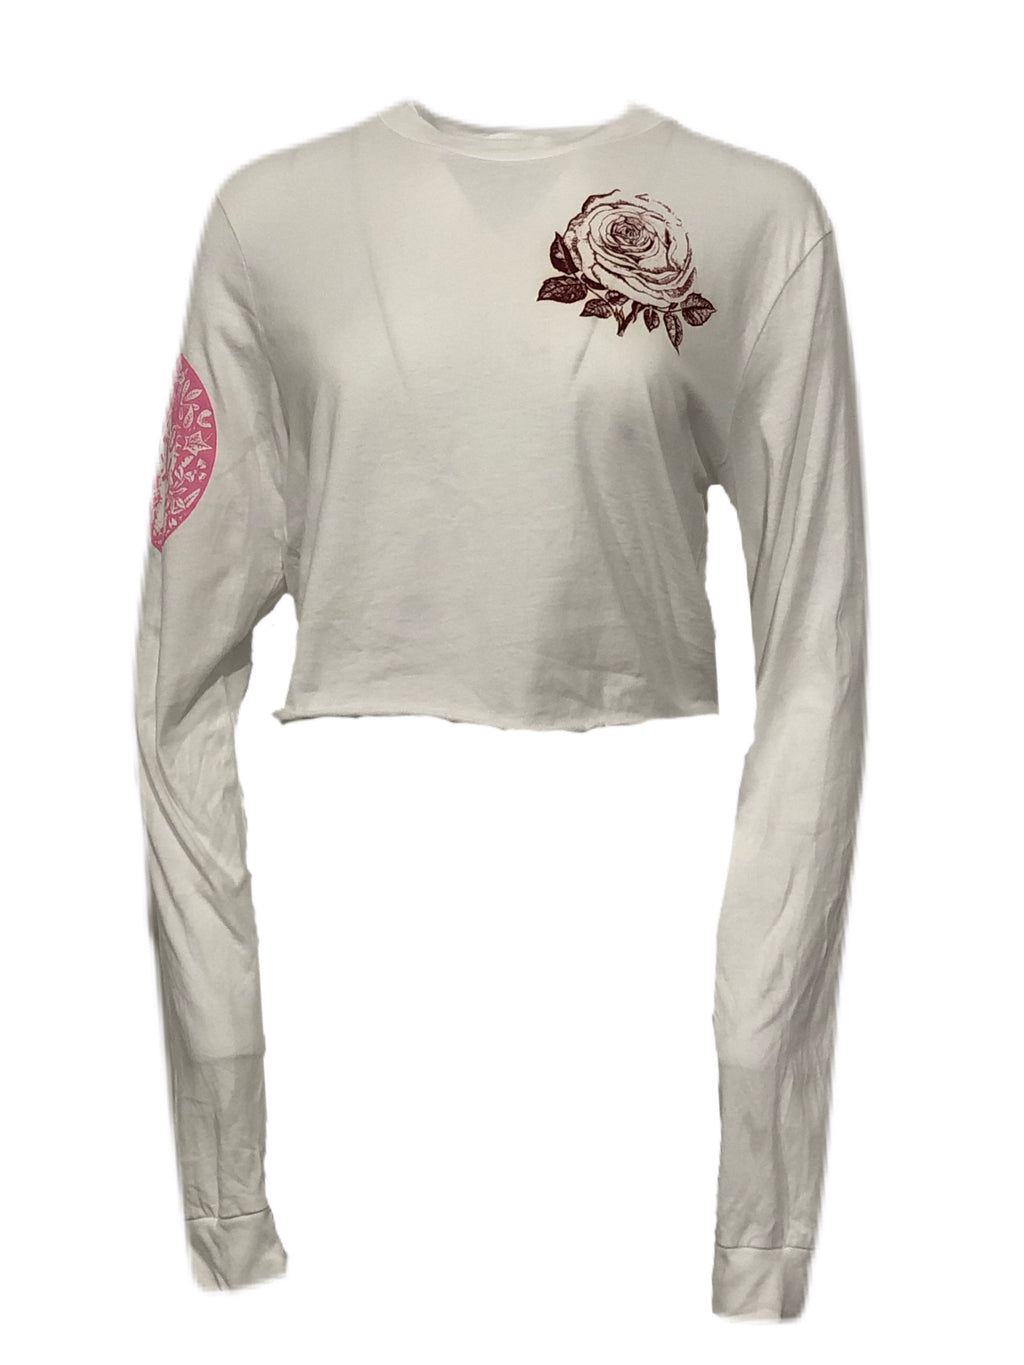 Silk Screen Mélange Cropped Long Sleeve T-Shirt - Spring 2021 - Libertine